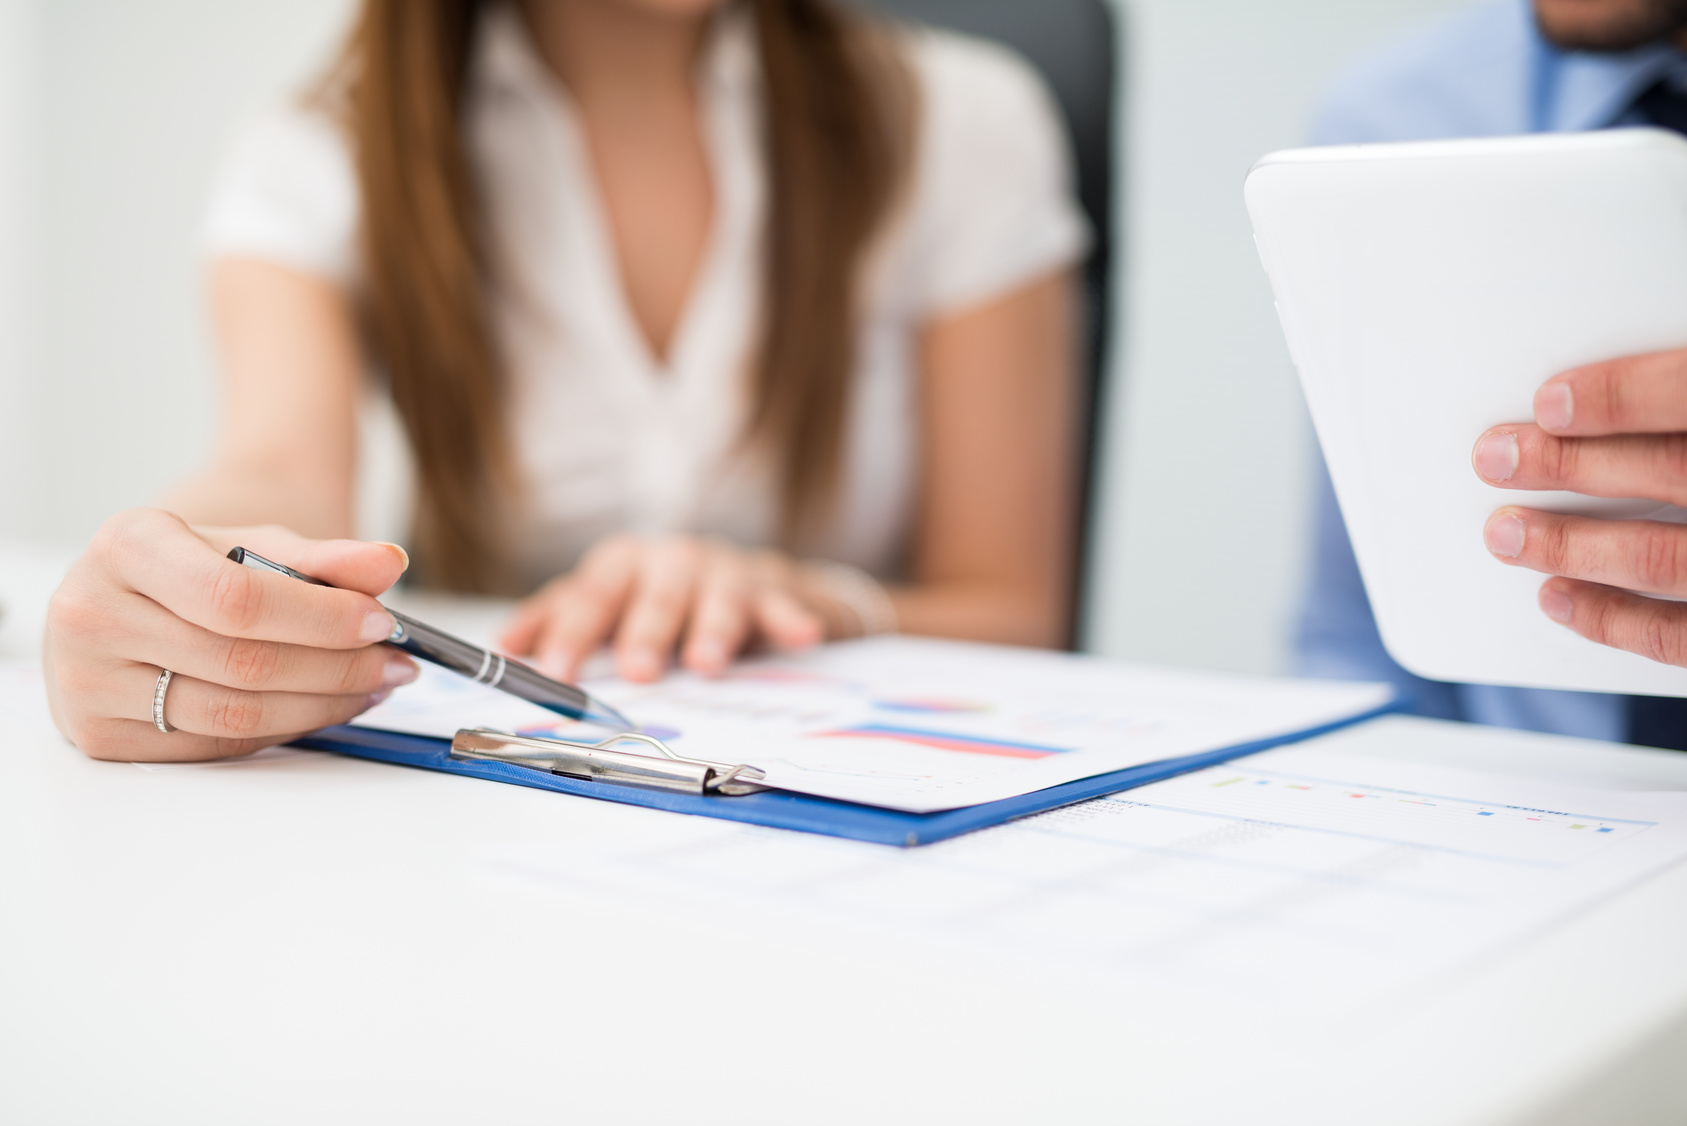 If Youu0027re Looking To Apply For A Range Of Project Manager Jobs, We Can Help  Get Your Cover Letter Ready With Our Project Manager Cover Letter Template.